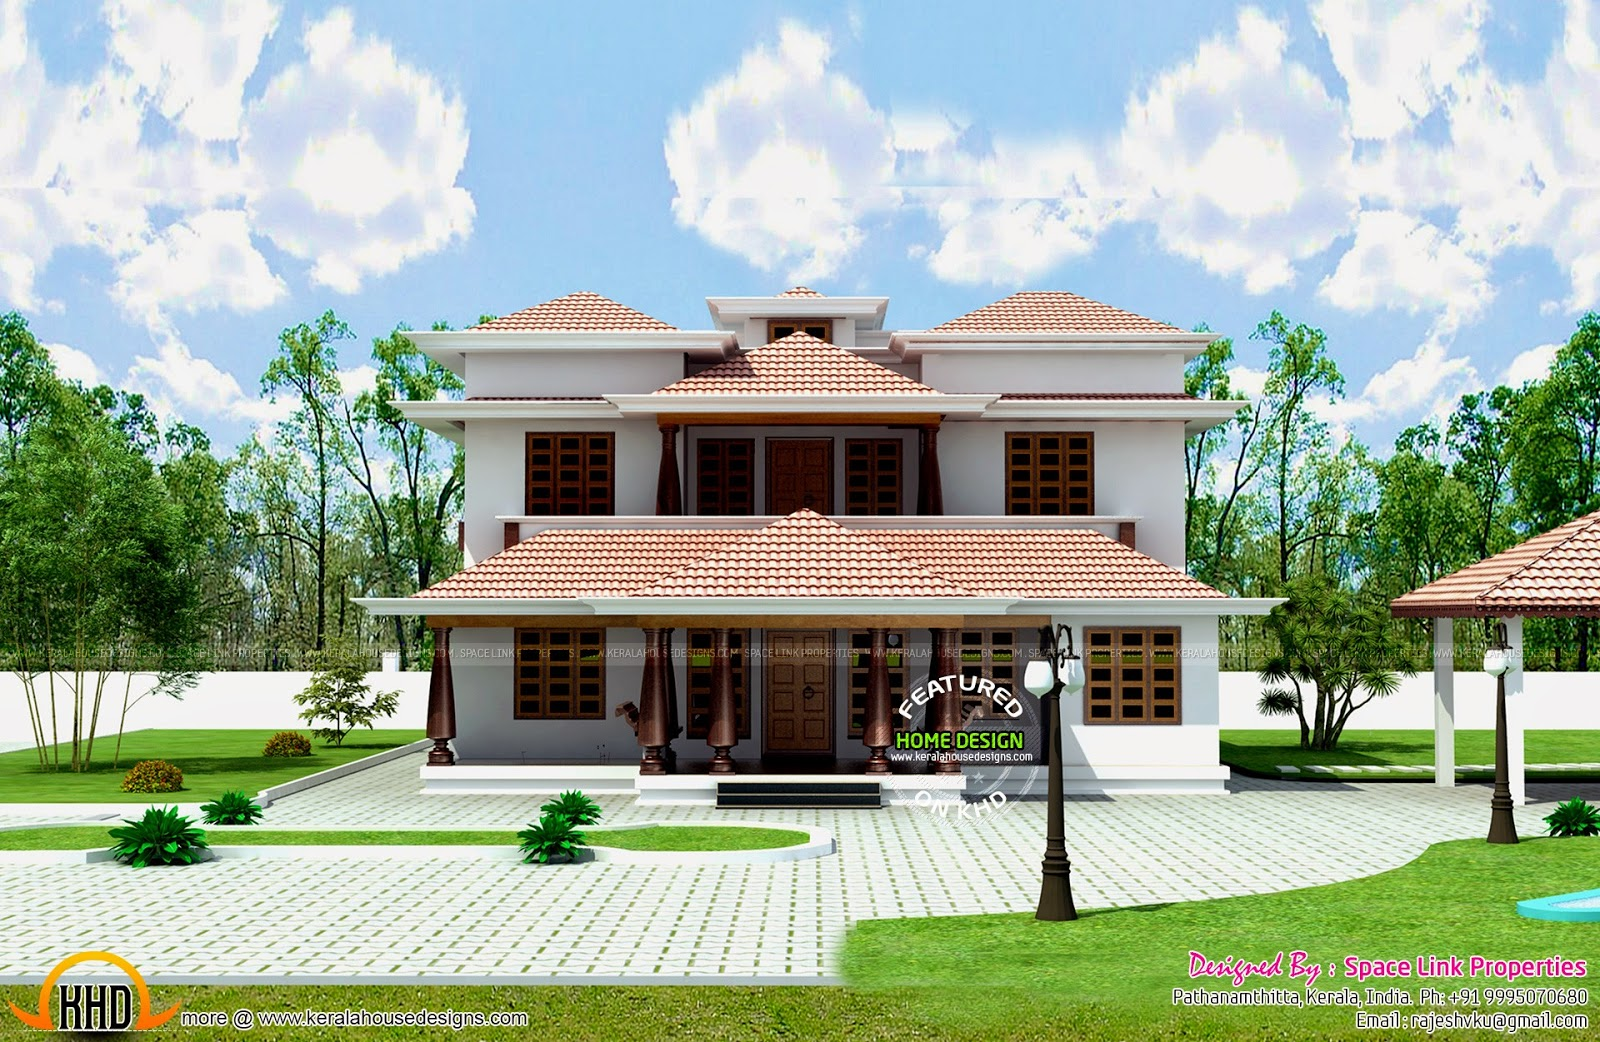 Typical Kerala Traditional House Kerala Home Design And Floor Plans